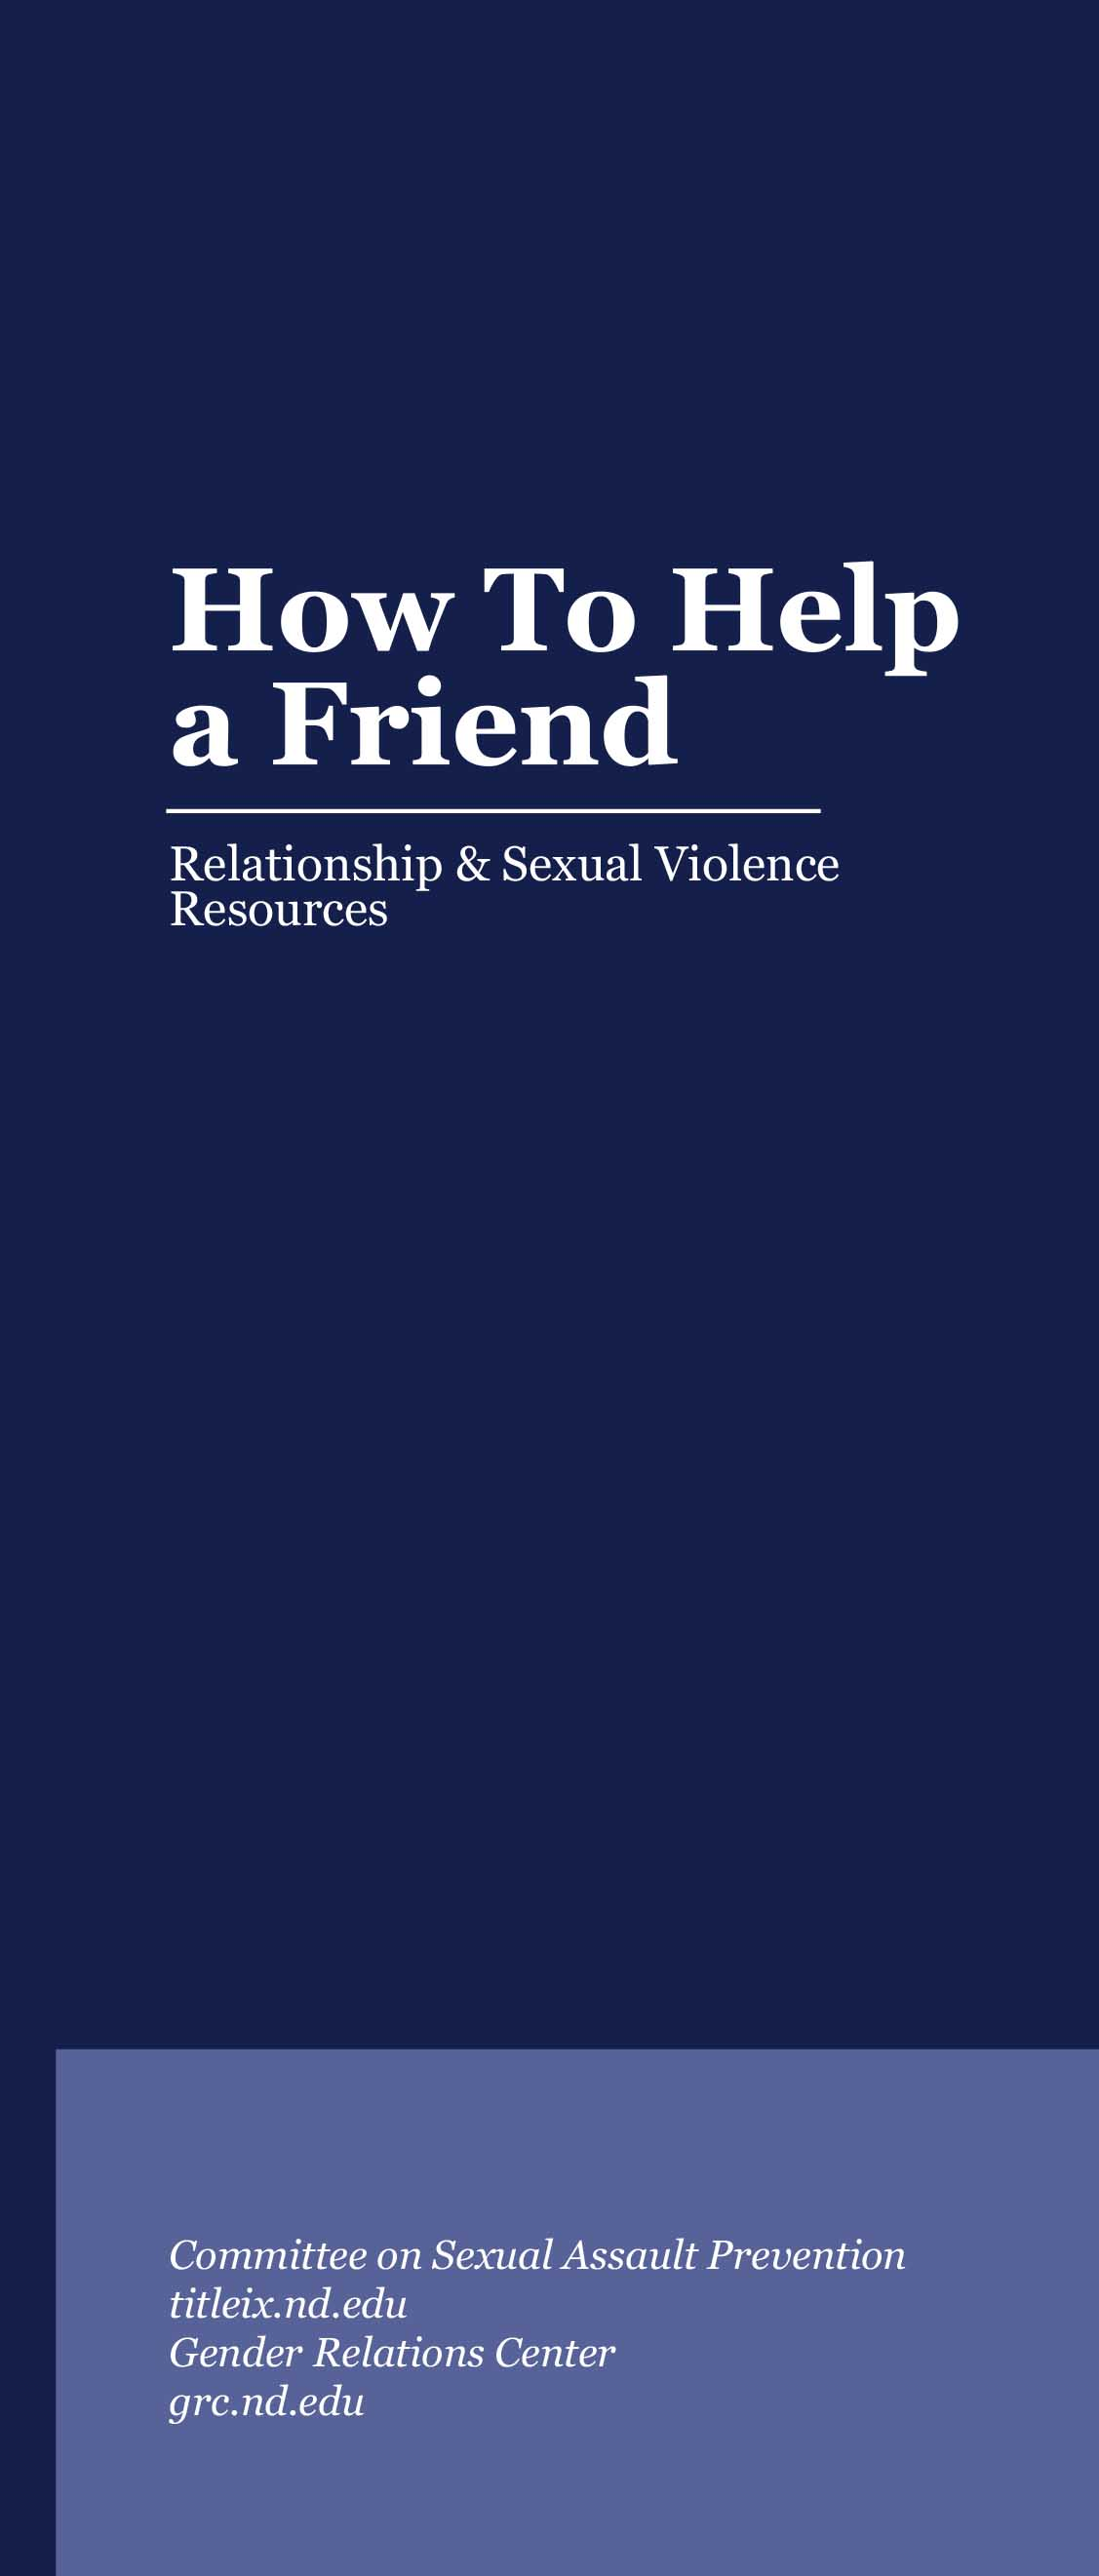 blue brochure stating How to Help A Friend, Relationship and Sexual Violence Resources